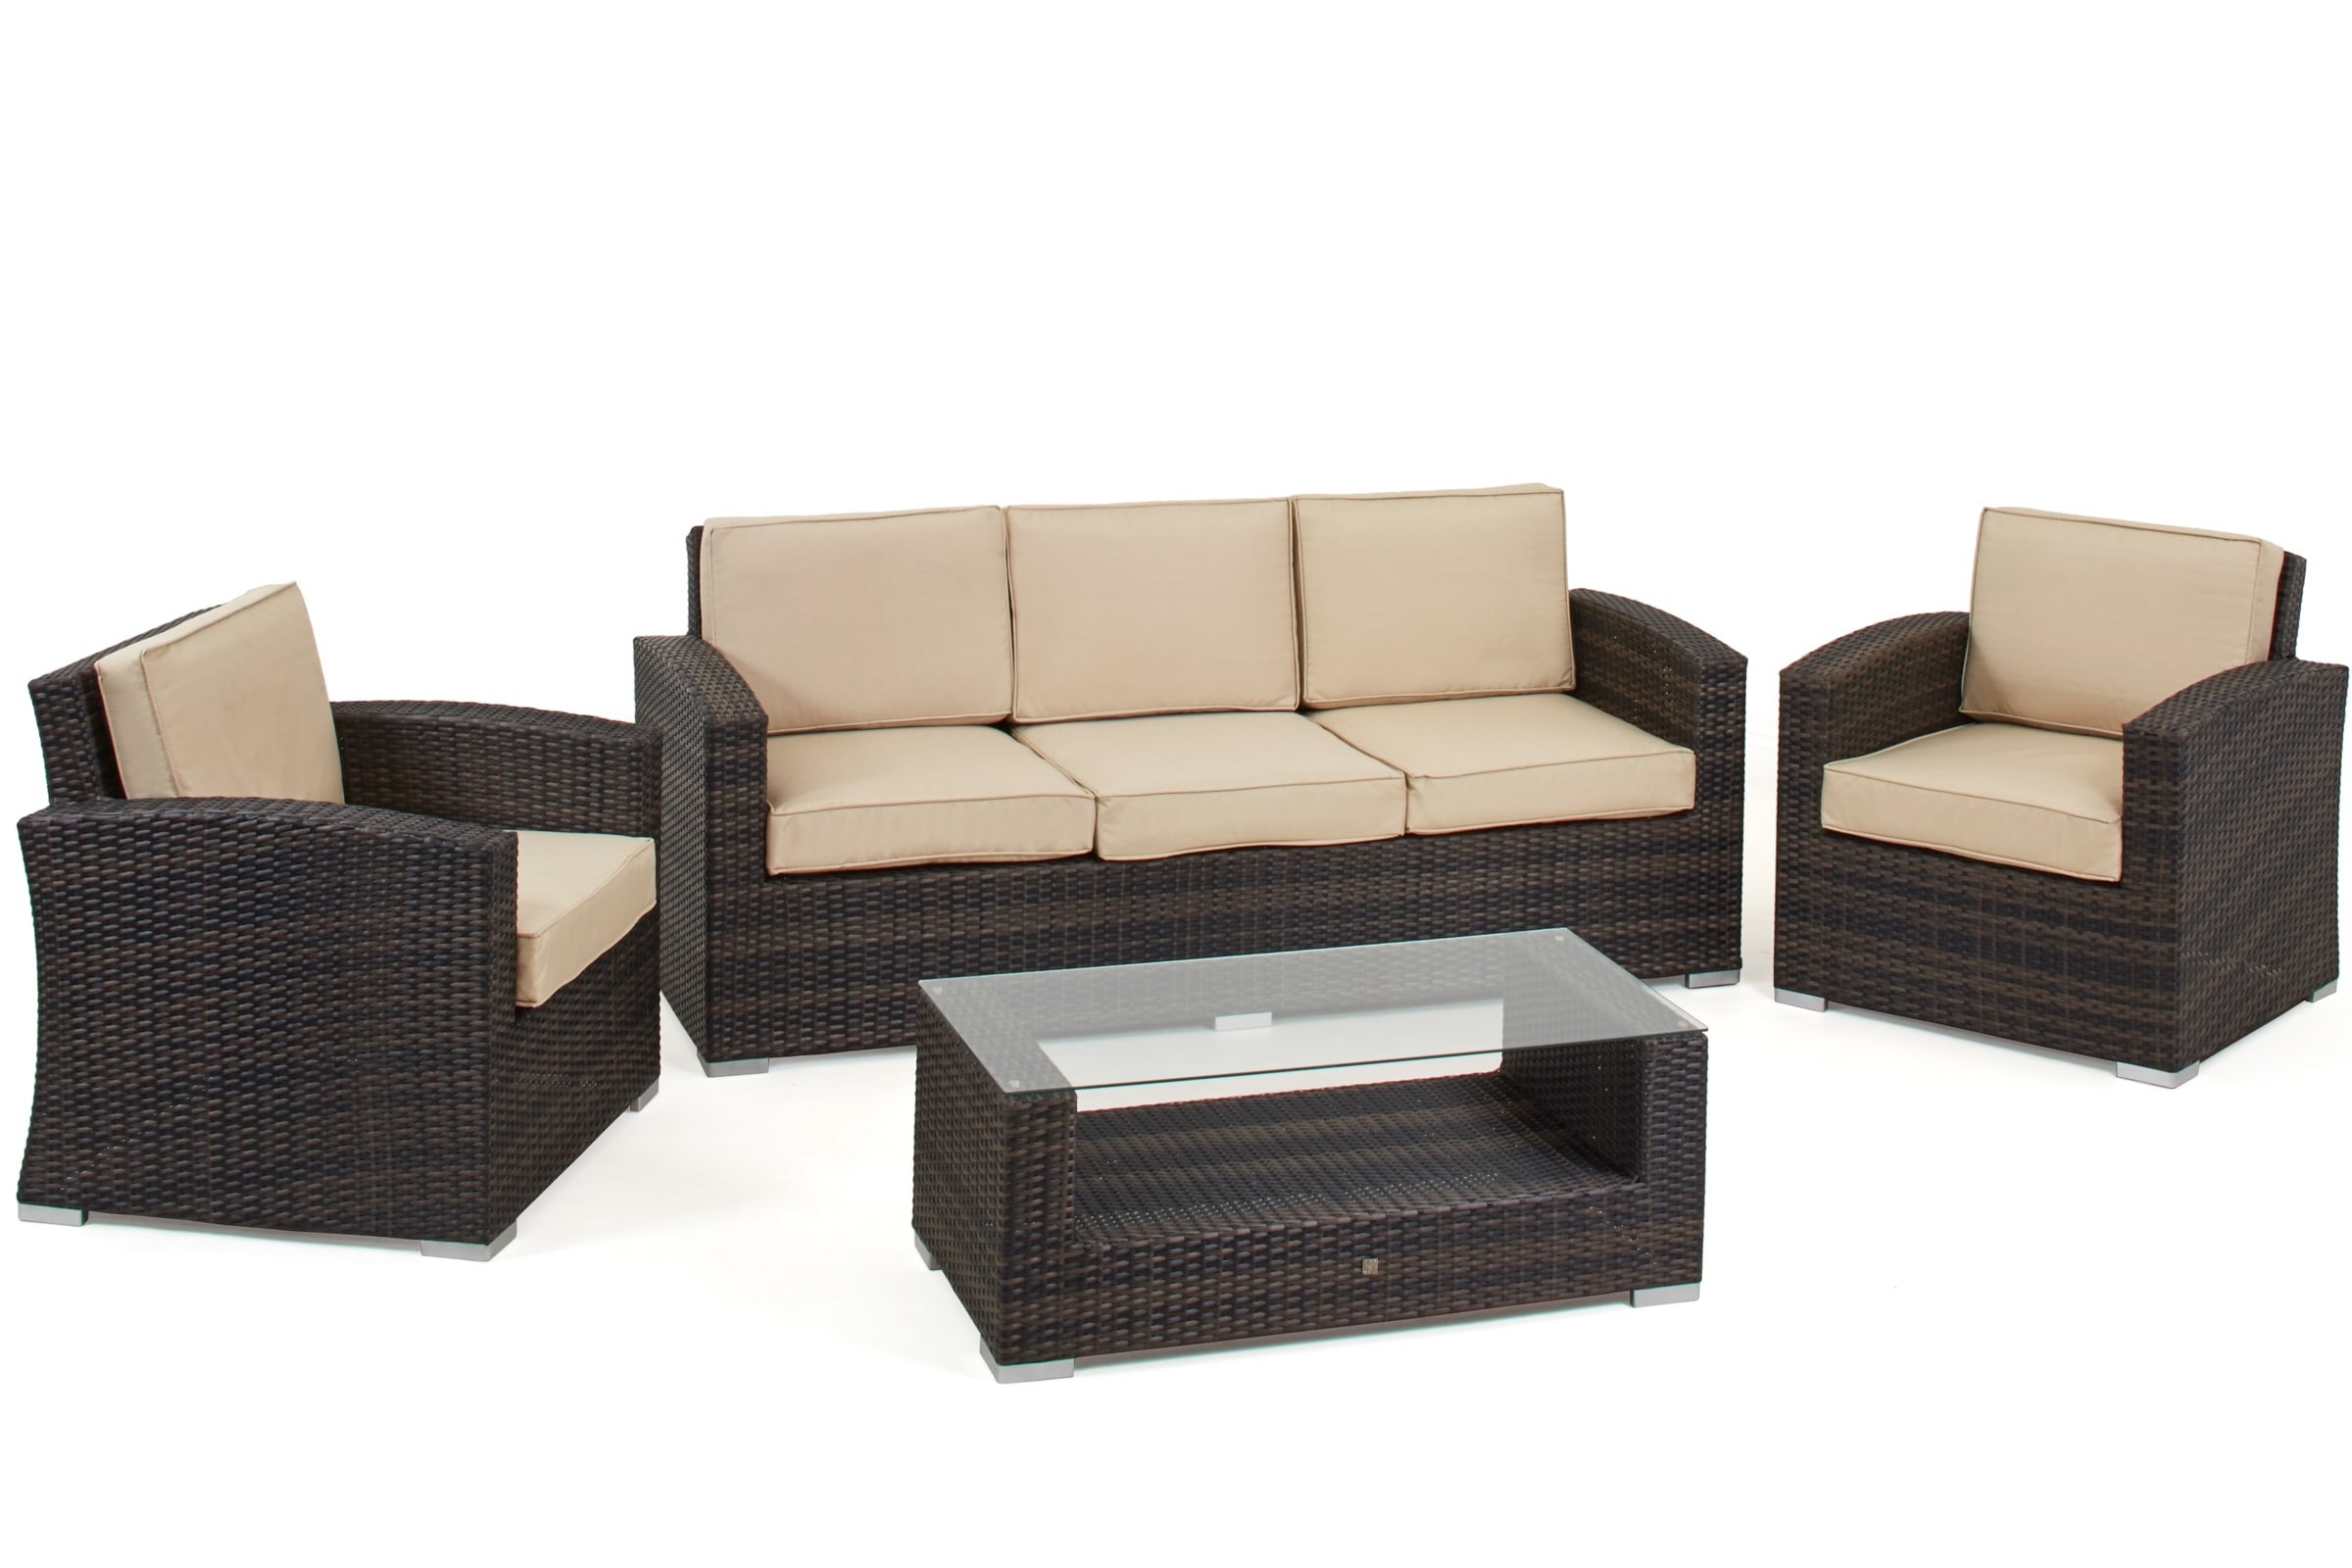 Maze Rattan Kingston 3 Seat Garden Sofa Set Rattan